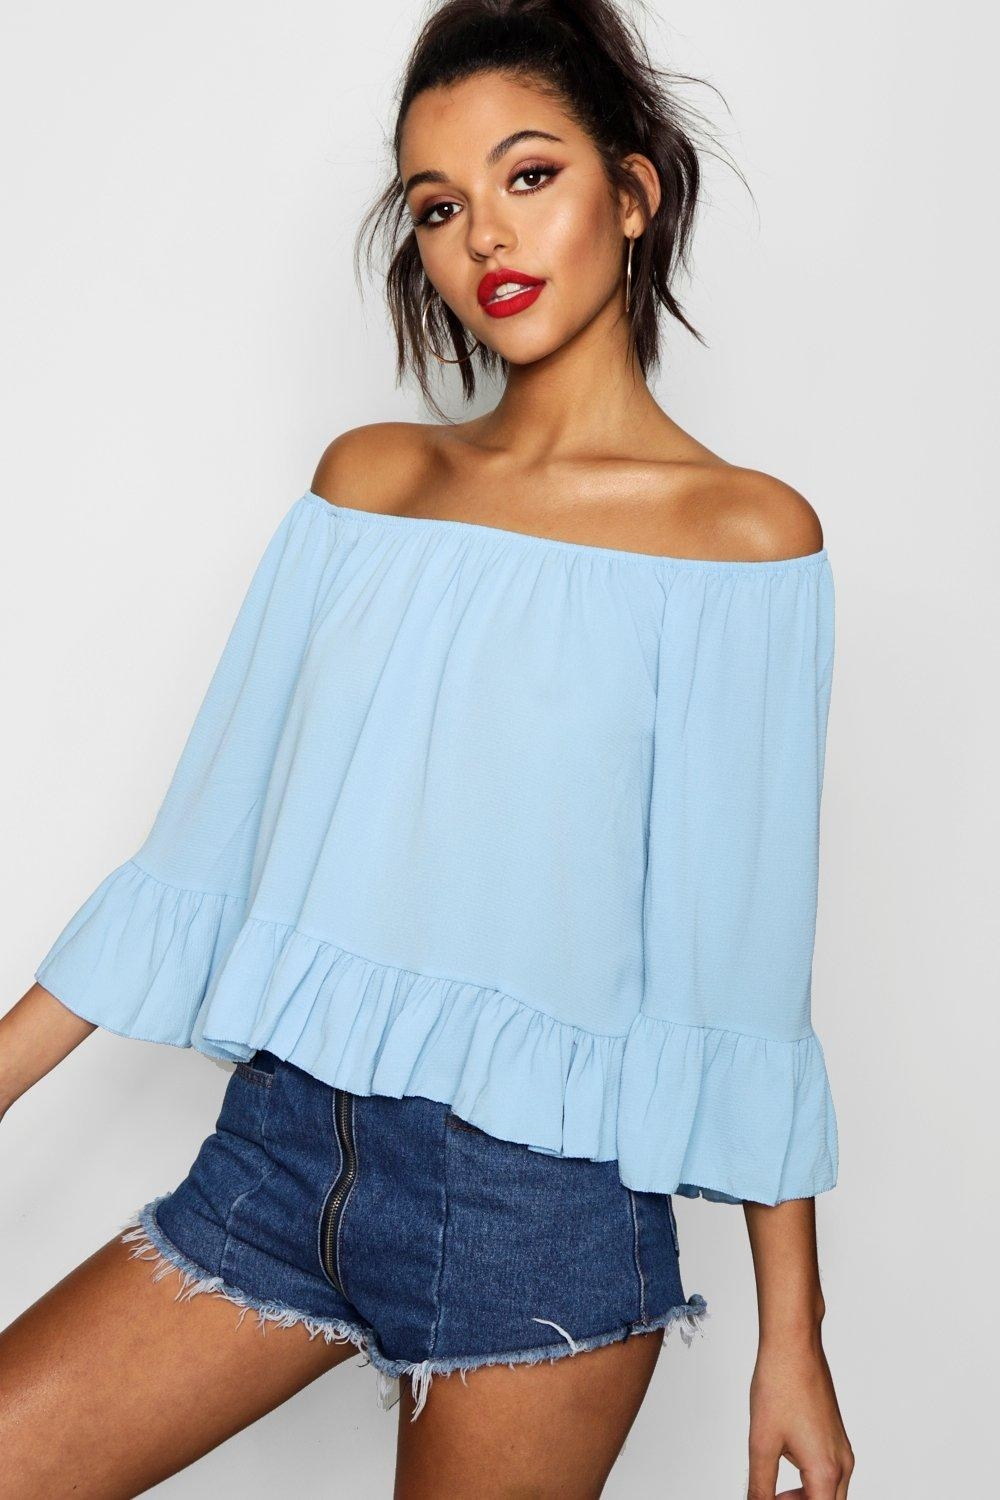 Price: $12 (20; available in sizes S-L and in three colors)